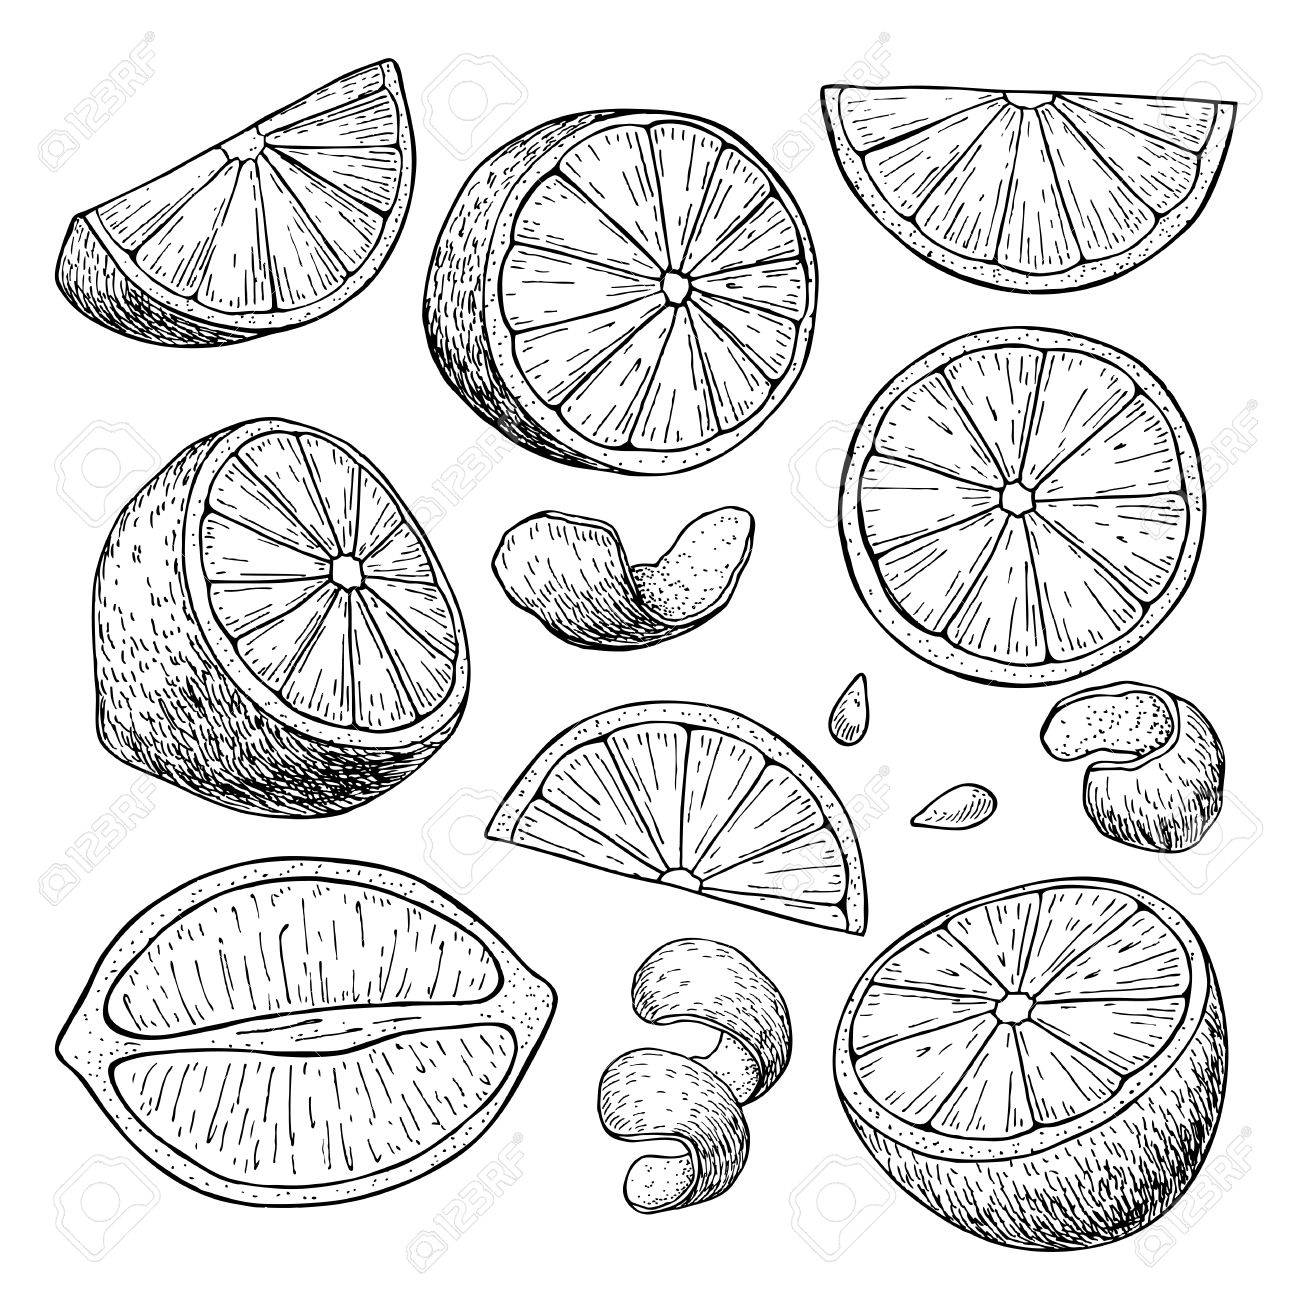 Lemon Slice Drawing At Getdrawings